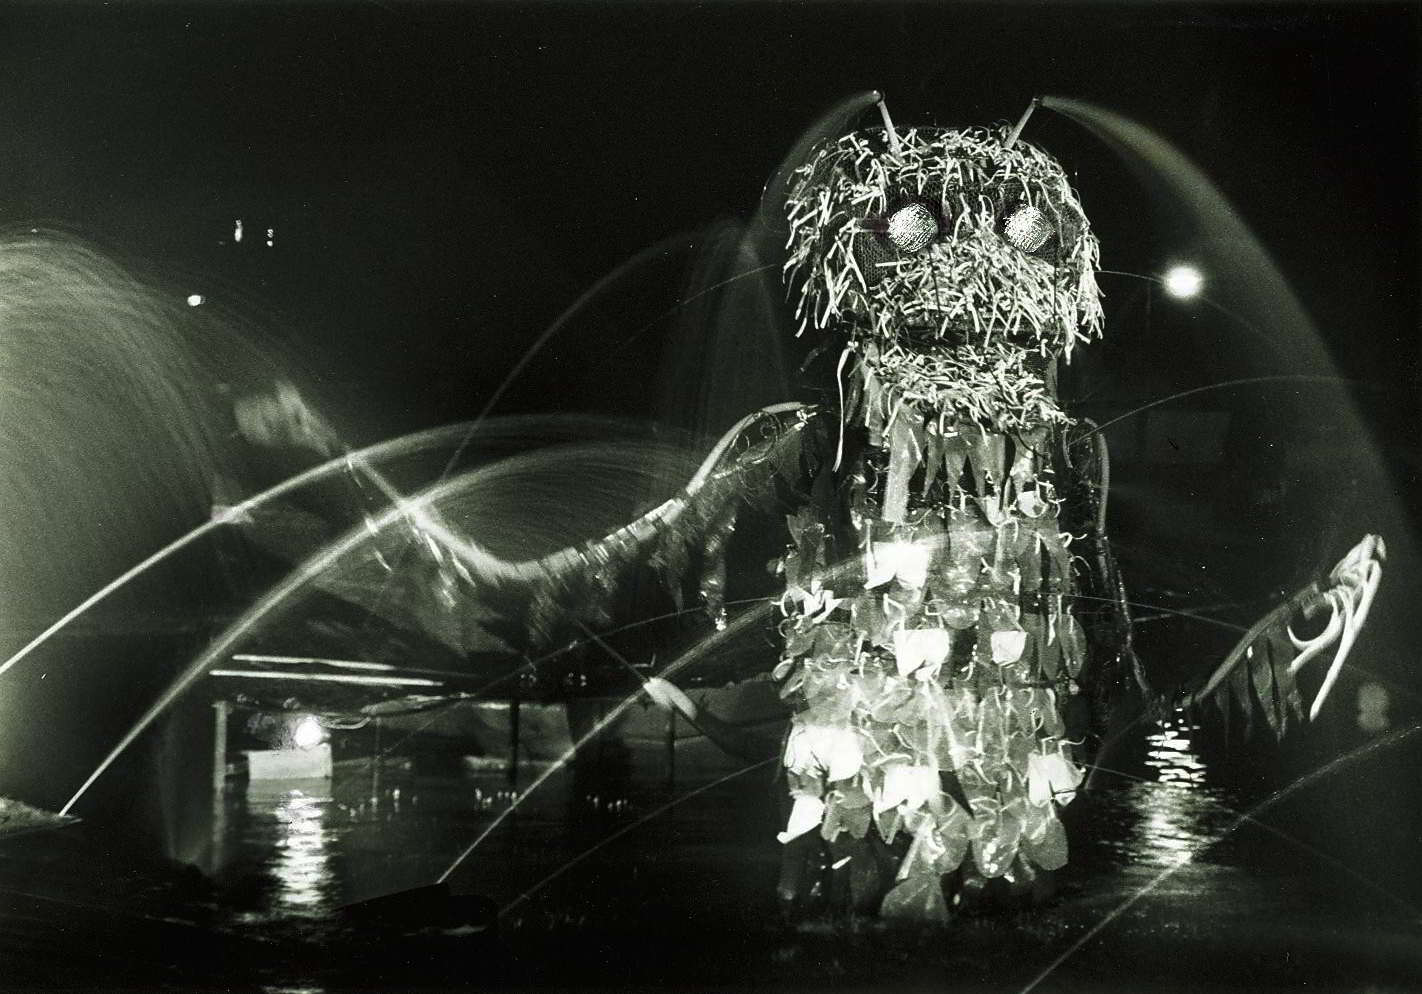 large creature rising from water with water sprays spinning from its body in spot lights